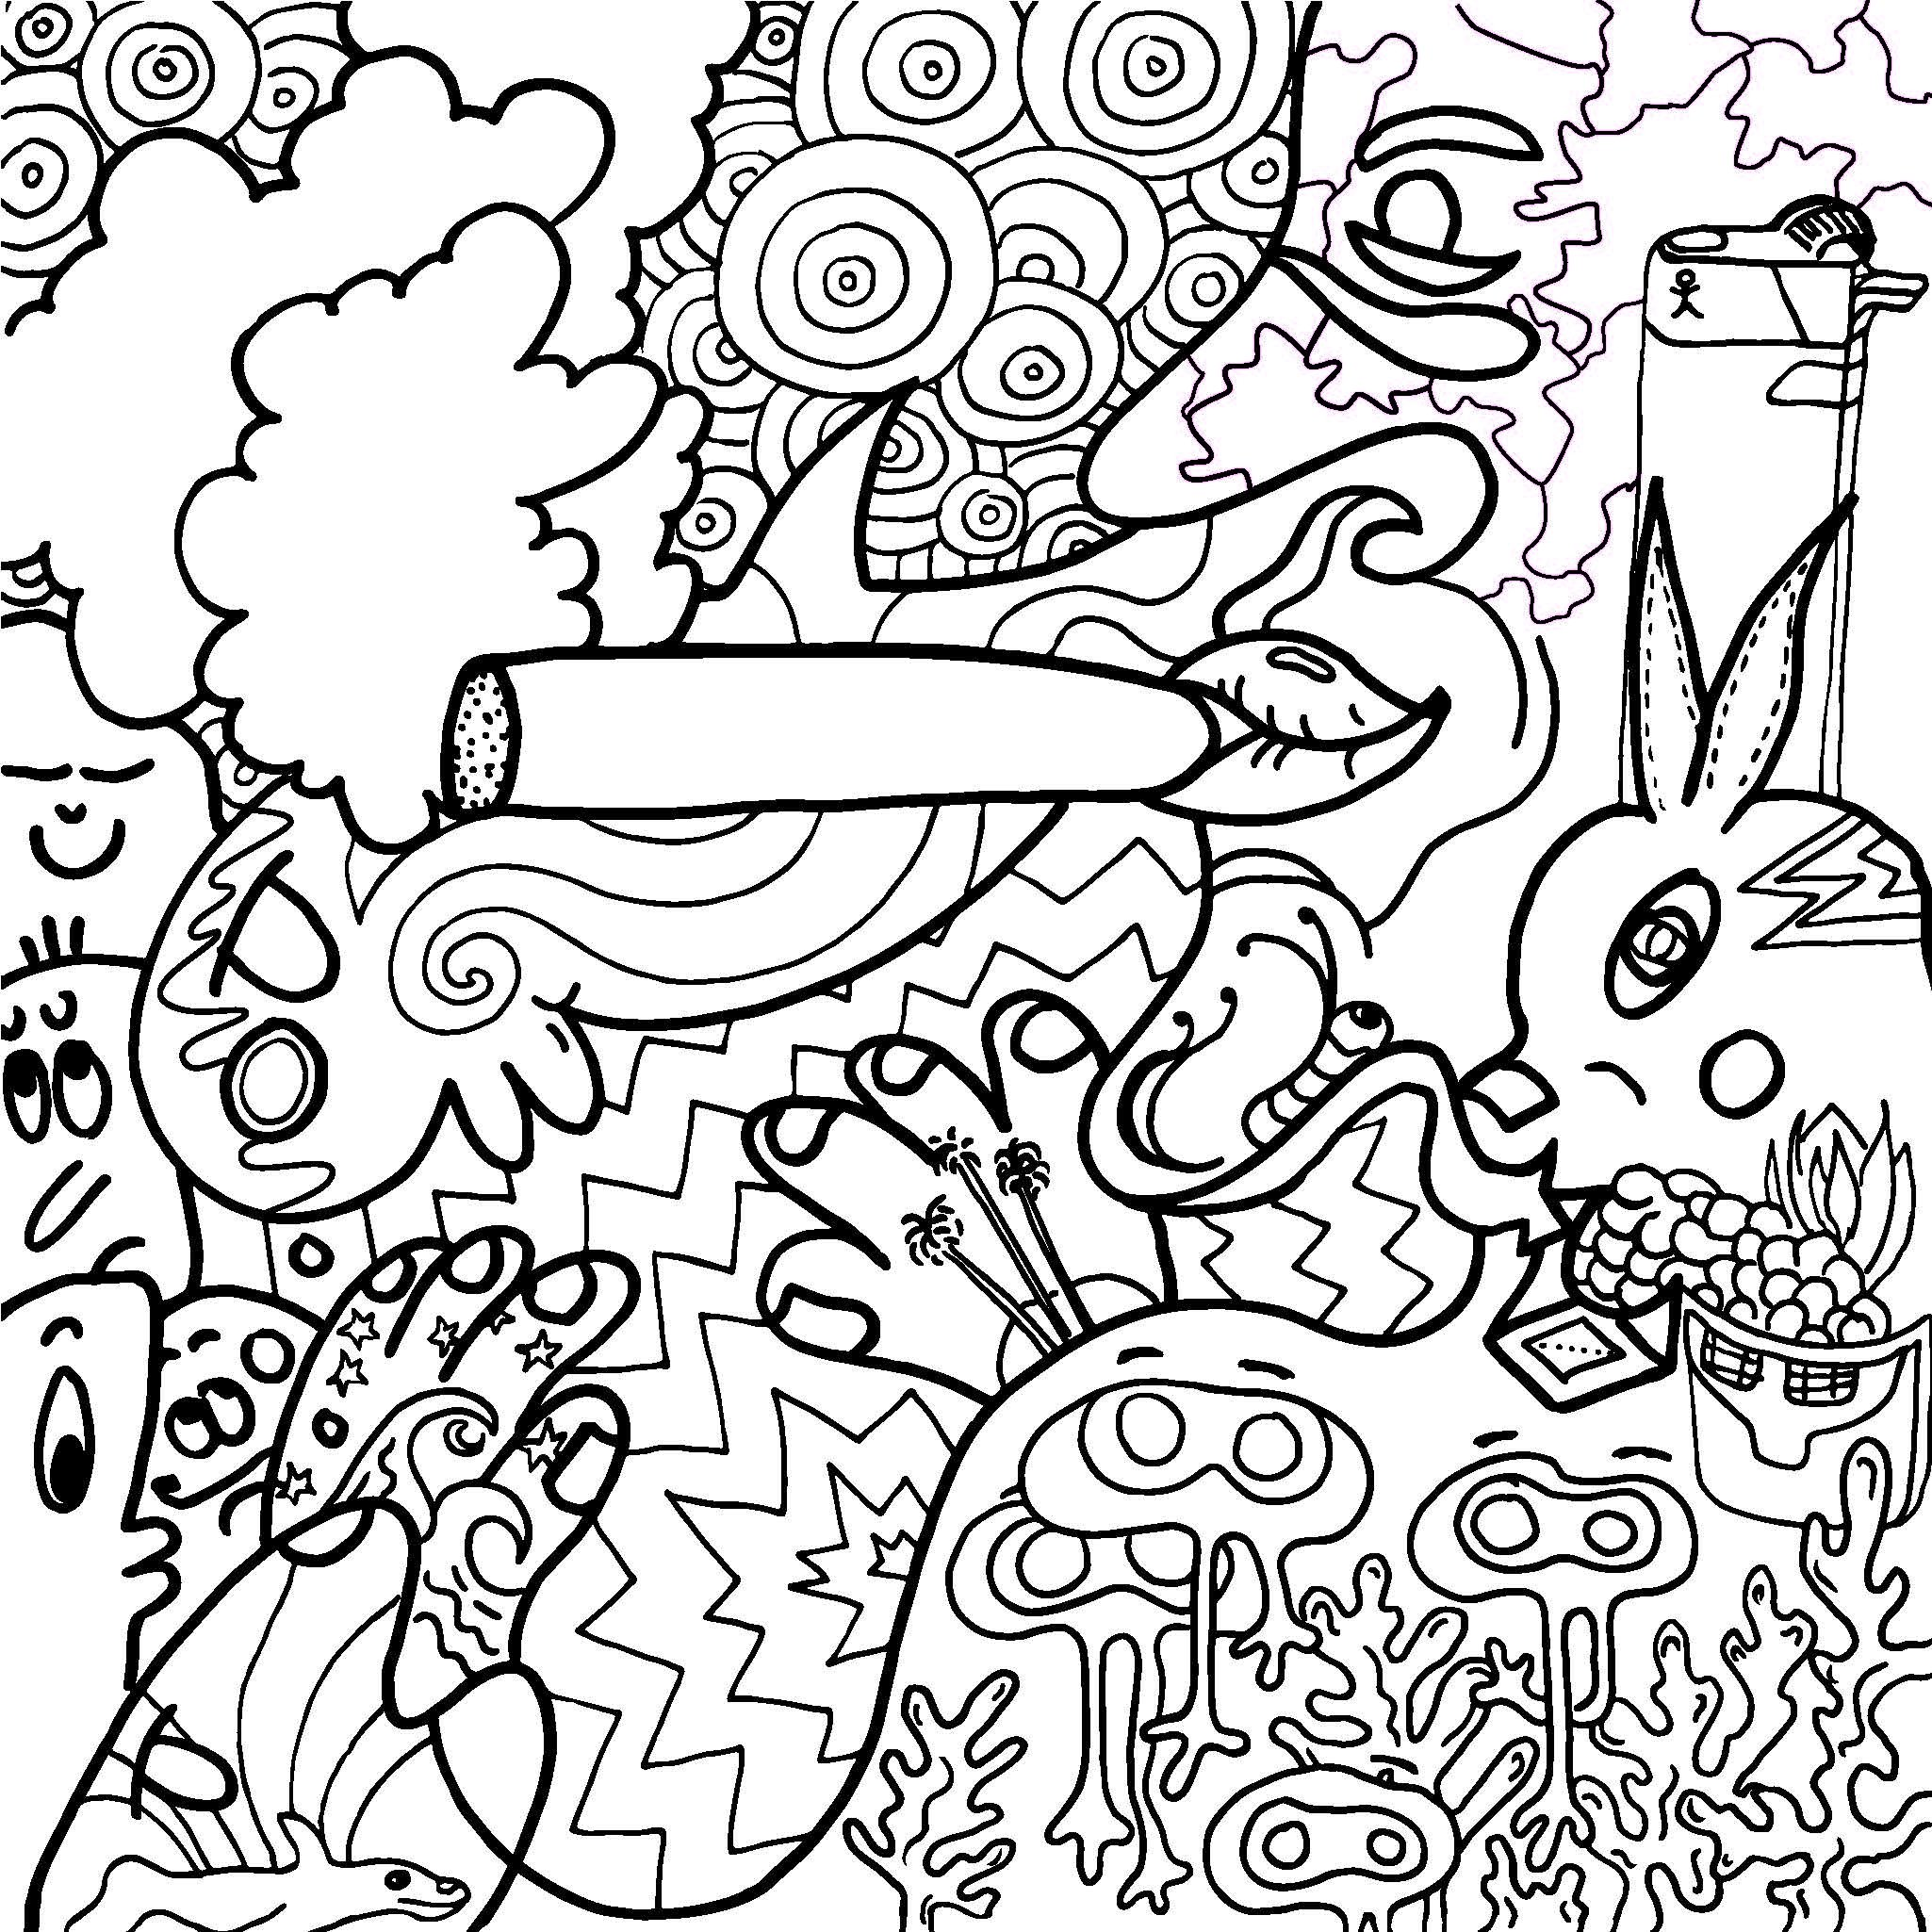 Stoner Coloring Pages Coloring Pages